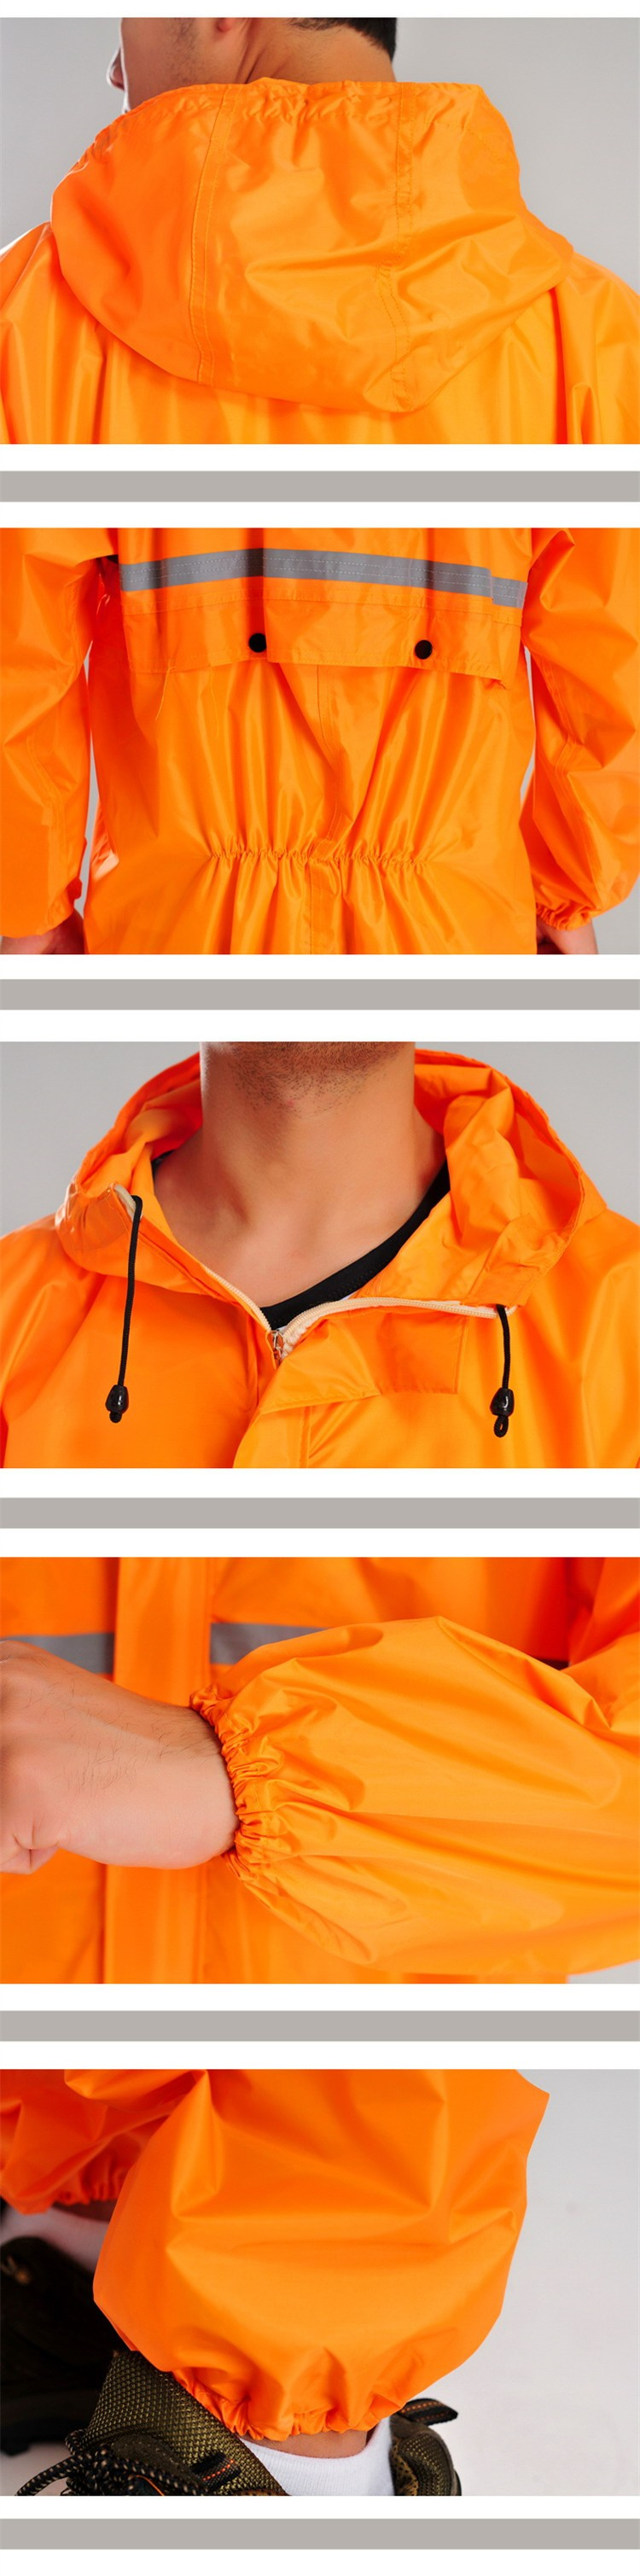 Conjoined raincoats, overalls Electric motorcycle fashion raincoat, men and women fission rain suit4